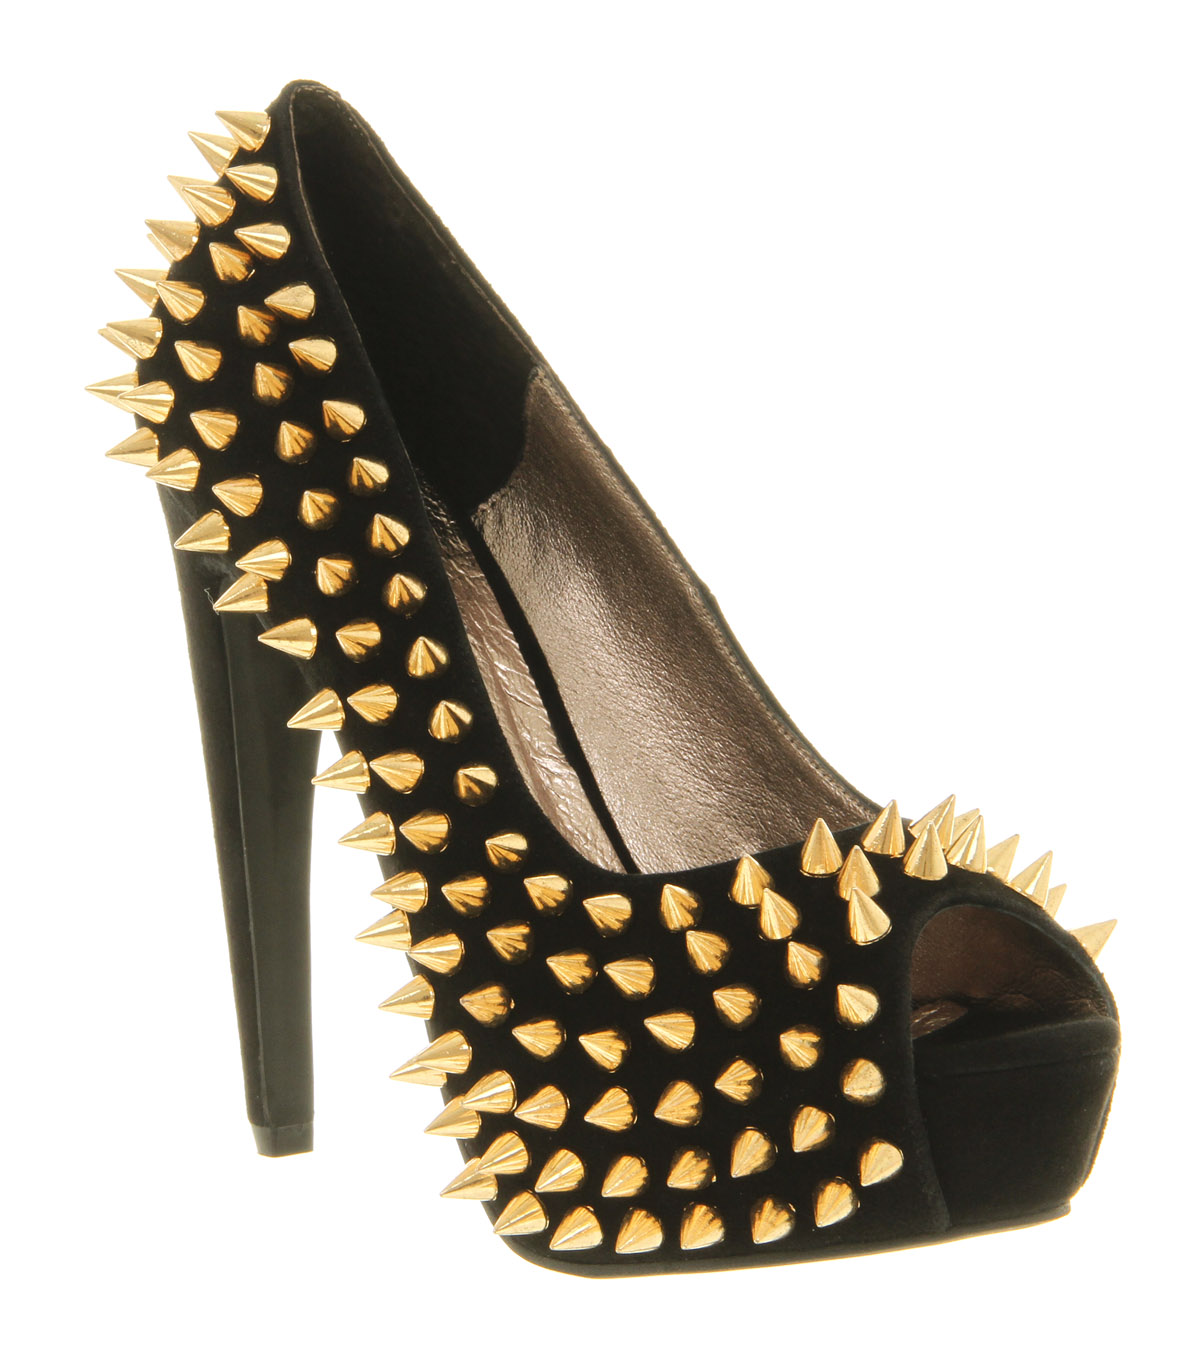 Shoes For Women With Metal Spikes